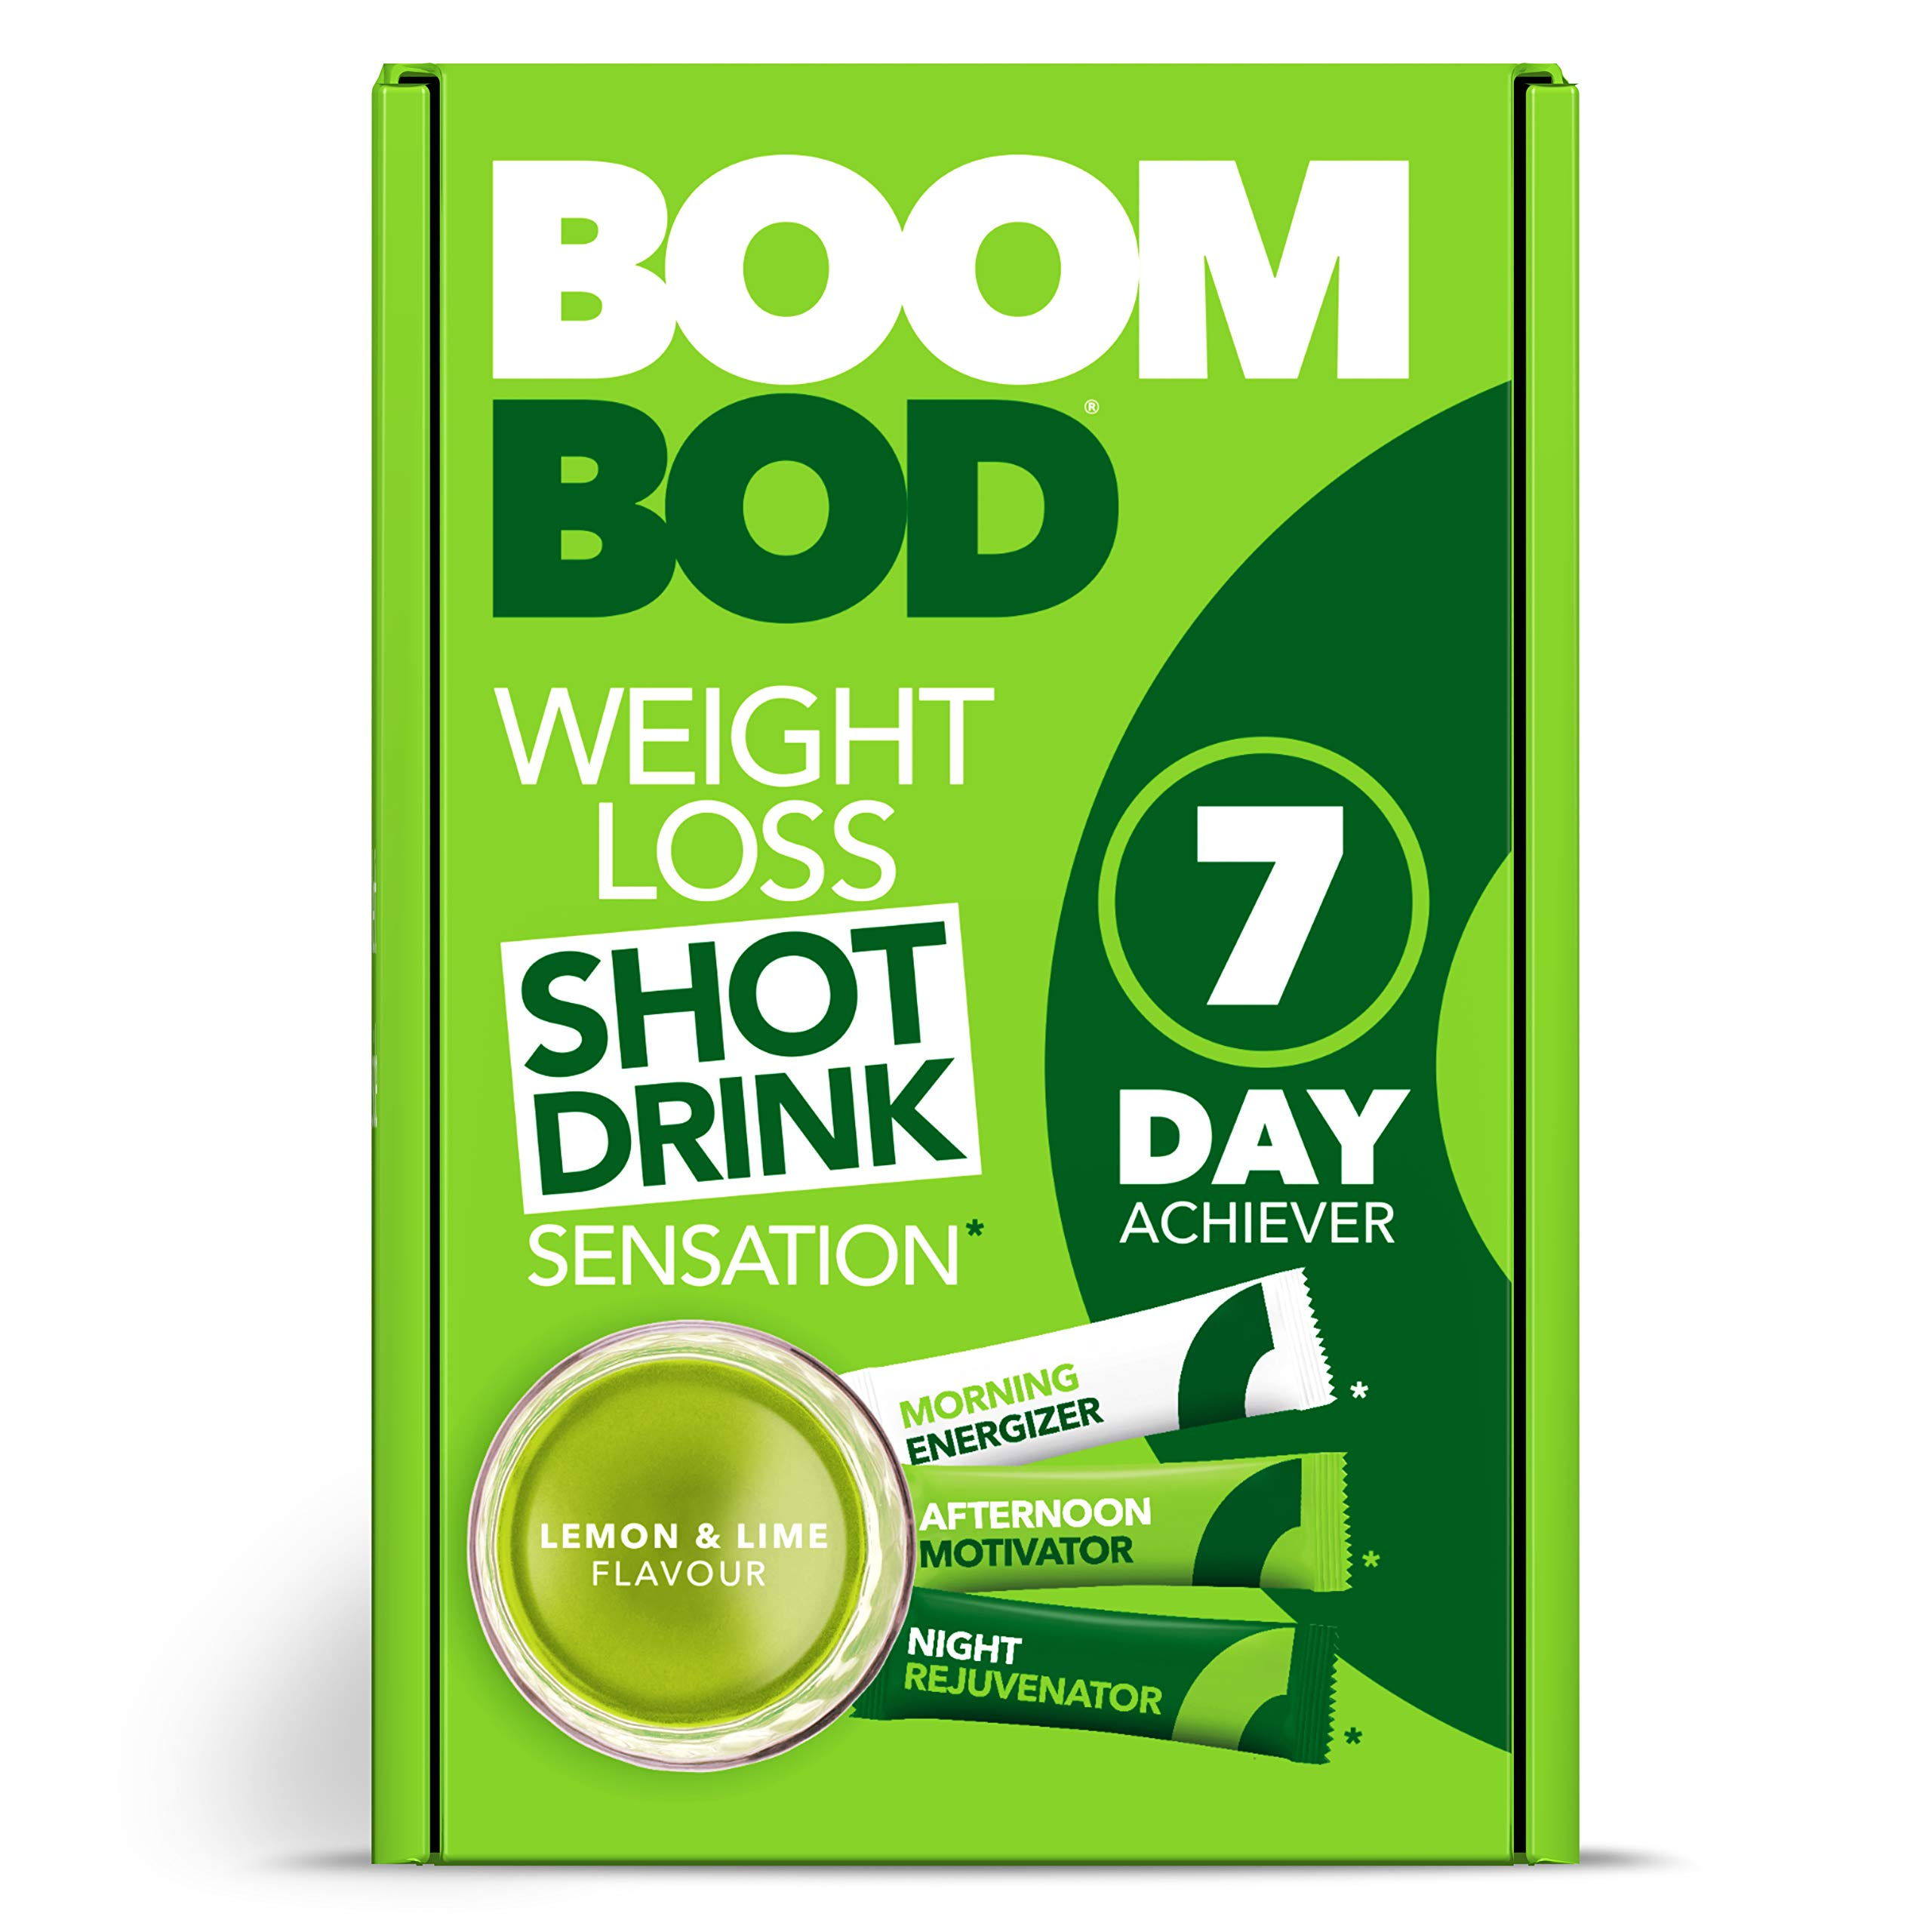 Boombod Weight Loss Shot Drink, Glucomannan, High Potency, Diet and Exercise Enhancement, Promote Fat Loss, Keto and Vegan Friendly, Sugar and Aspartame Free, Gluten-Free - Lemon Lime Flavor by Boombod